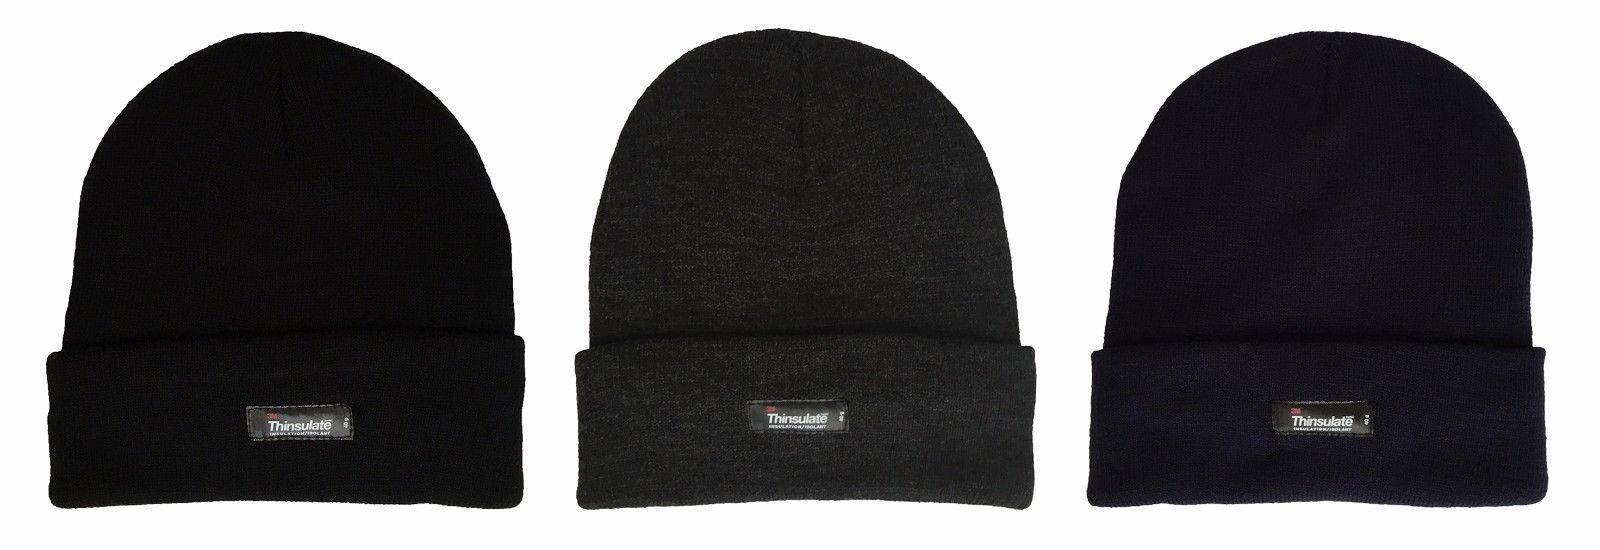 Primary image for Thinsulate - Boys Kids Warm Thermal Fleece Insulated Knit Cuff Beanie Winter Hat